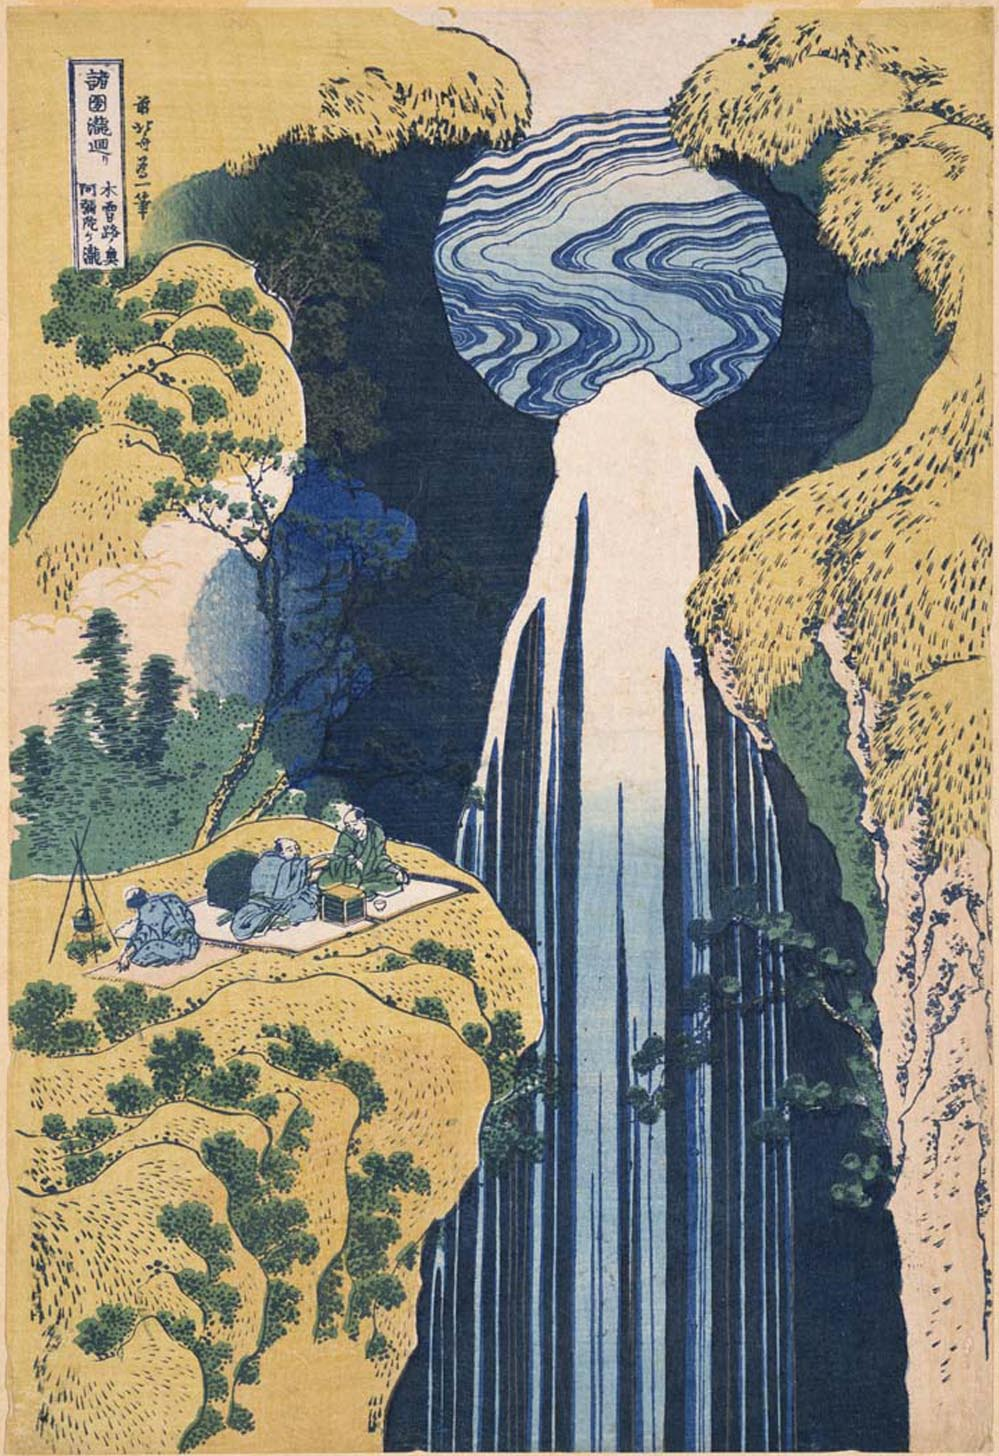 The Amida Falls in the Far Reaches of the Kisokaidô Road by Hokusai c1832